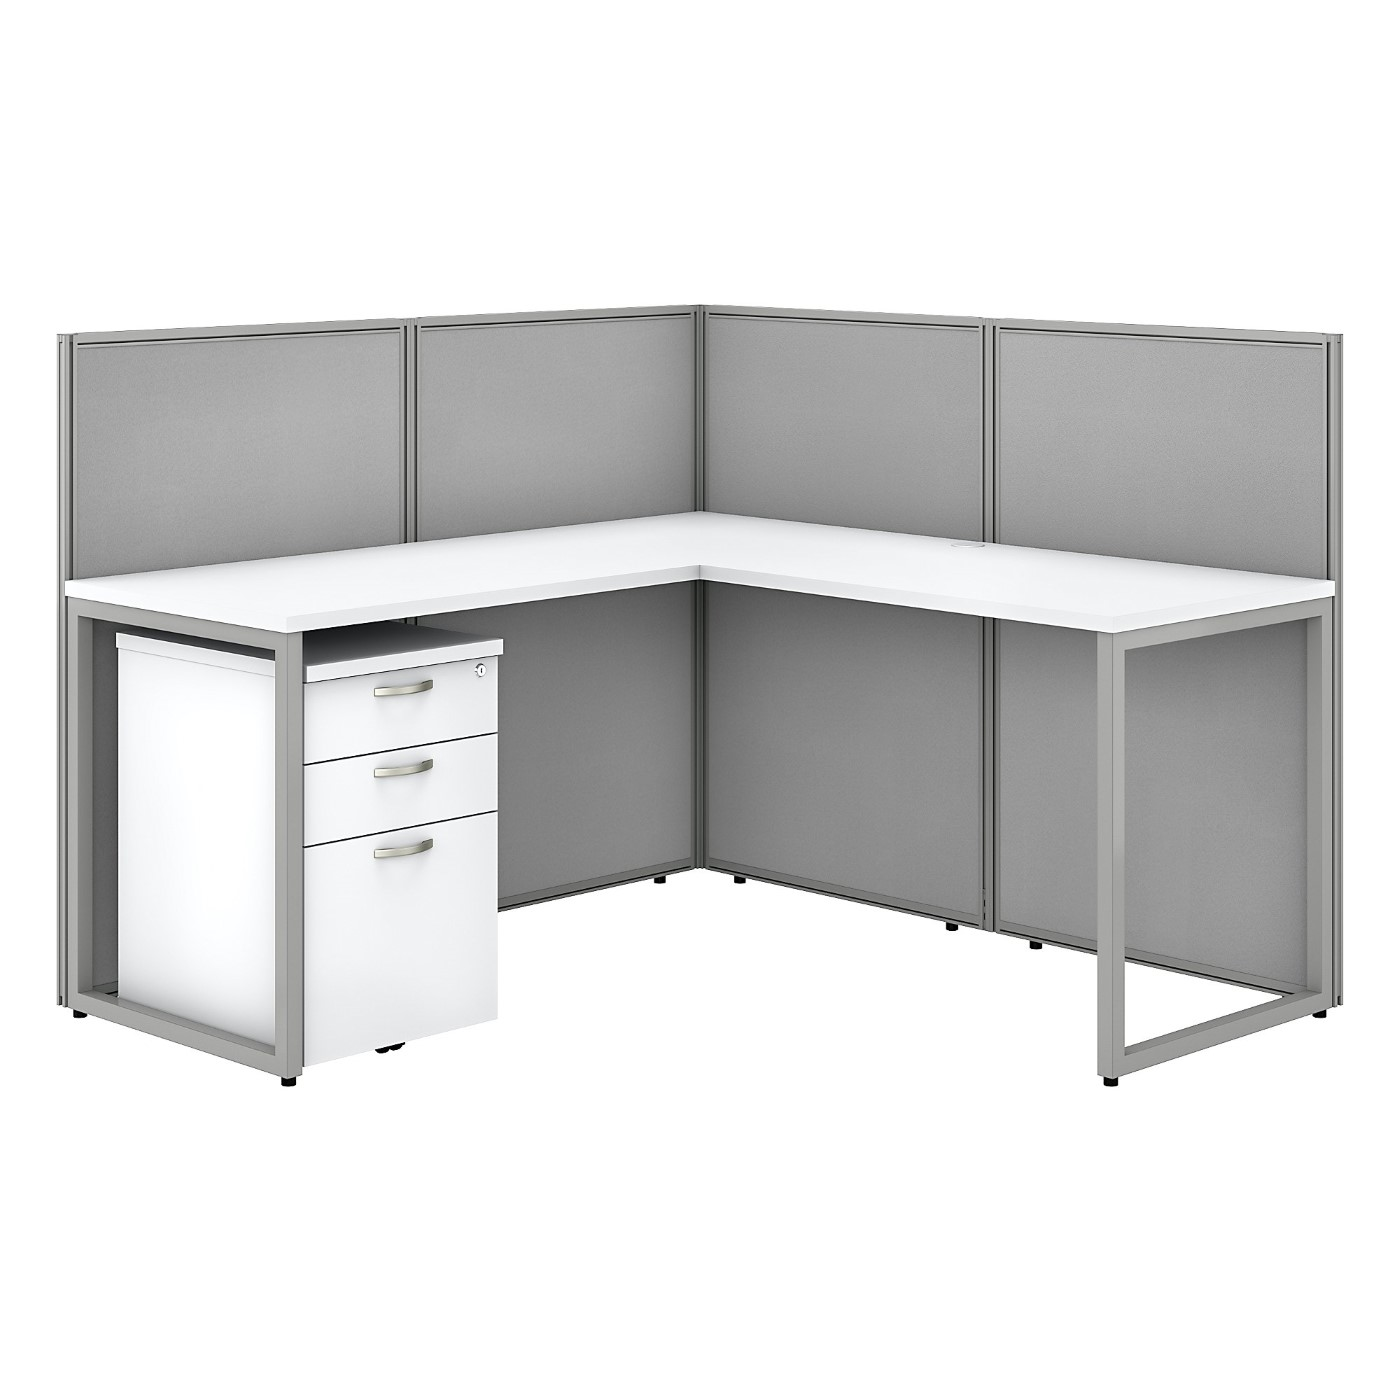 BUSH BUSINESS FURNITURE EASY OFFICE 60W L SHAPED CUBICLE DESK WITH FILE CABINET AND 45H PANELS. FREE SHIPPING SALE DEDUCT 10% MORE ENTER '10percent' IN COUPON CODE BOX WHILE CHECKING OUT. ENDS 5-31-20.